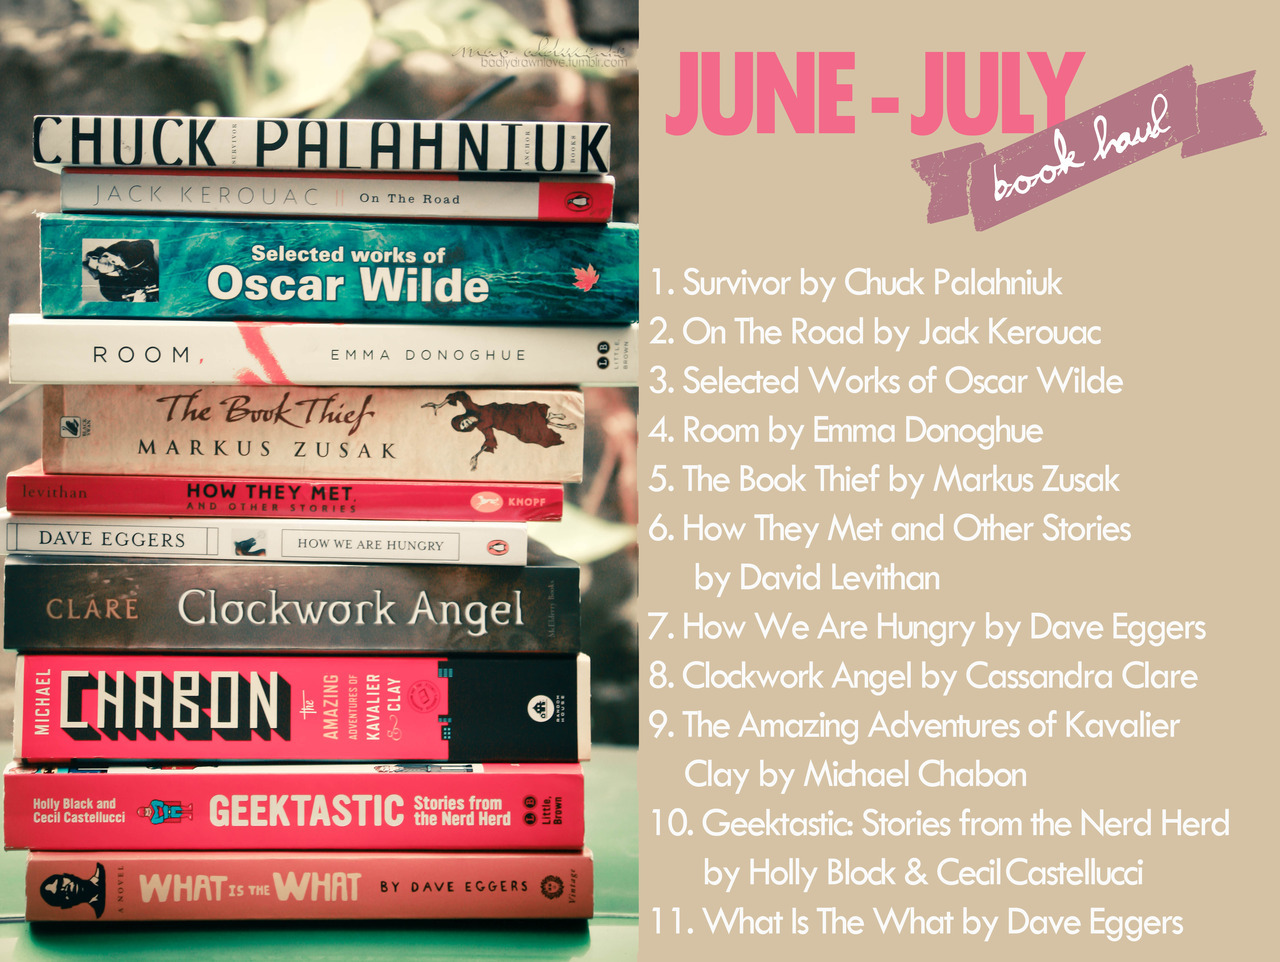 June - July book haul! I forgot to include It's Kind Of A Funny Story by Ned Vizzini (which is what I'm currently reading).